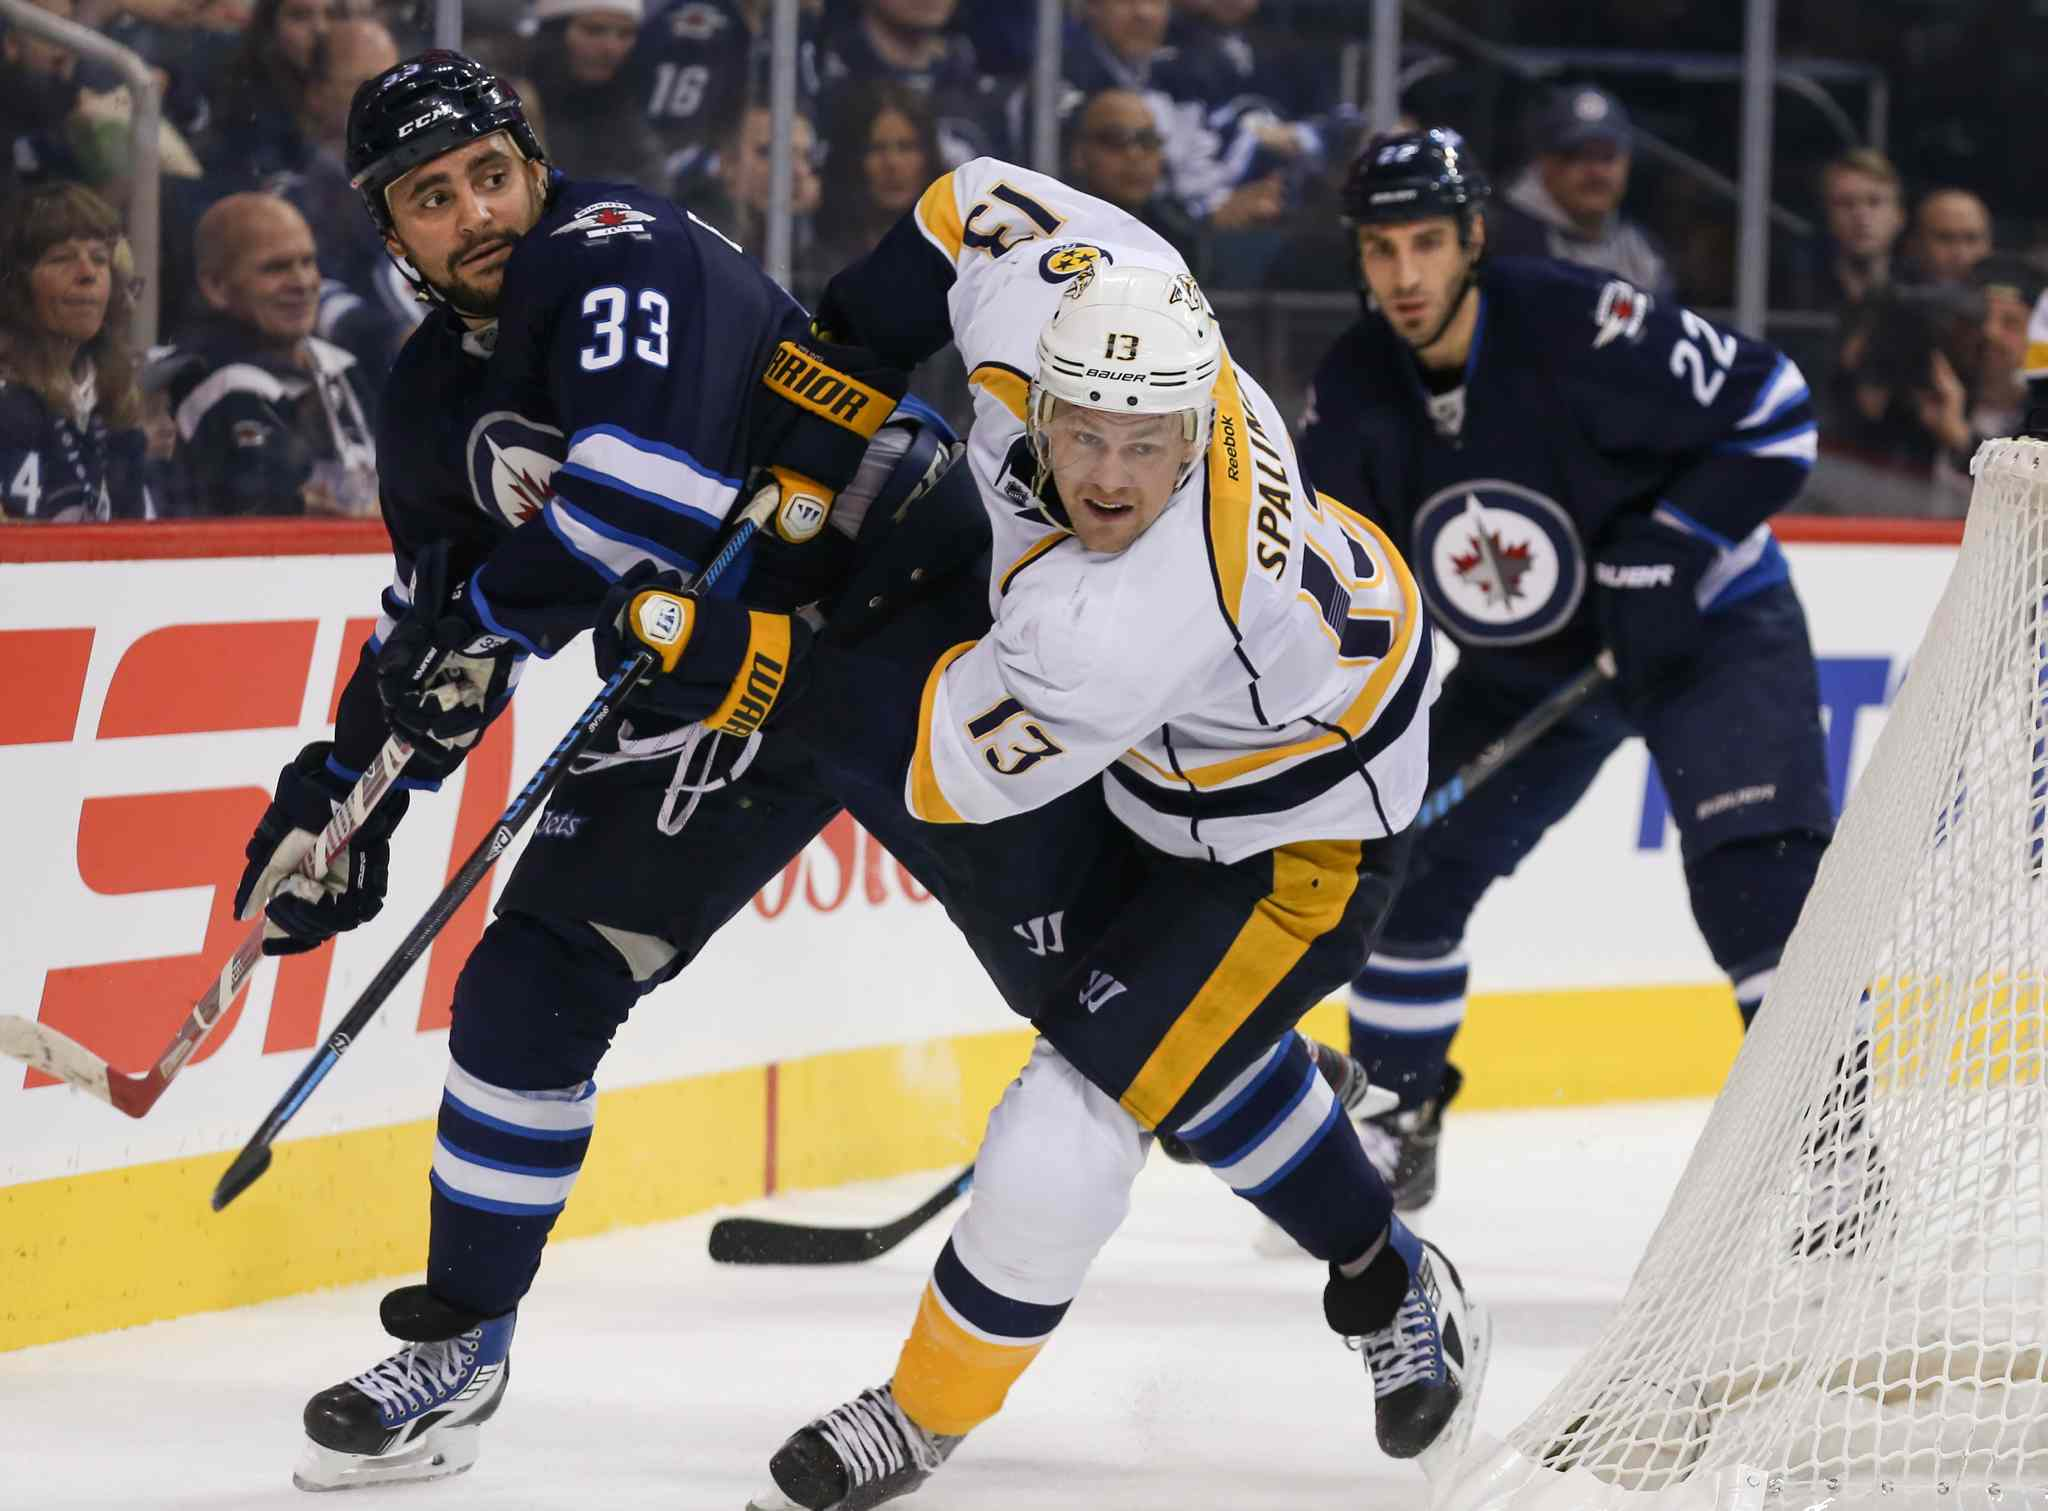 Jets defenceman Dustin Byfuglien holds back Predators' Nick Spaling behind the Jets' net in the first period.